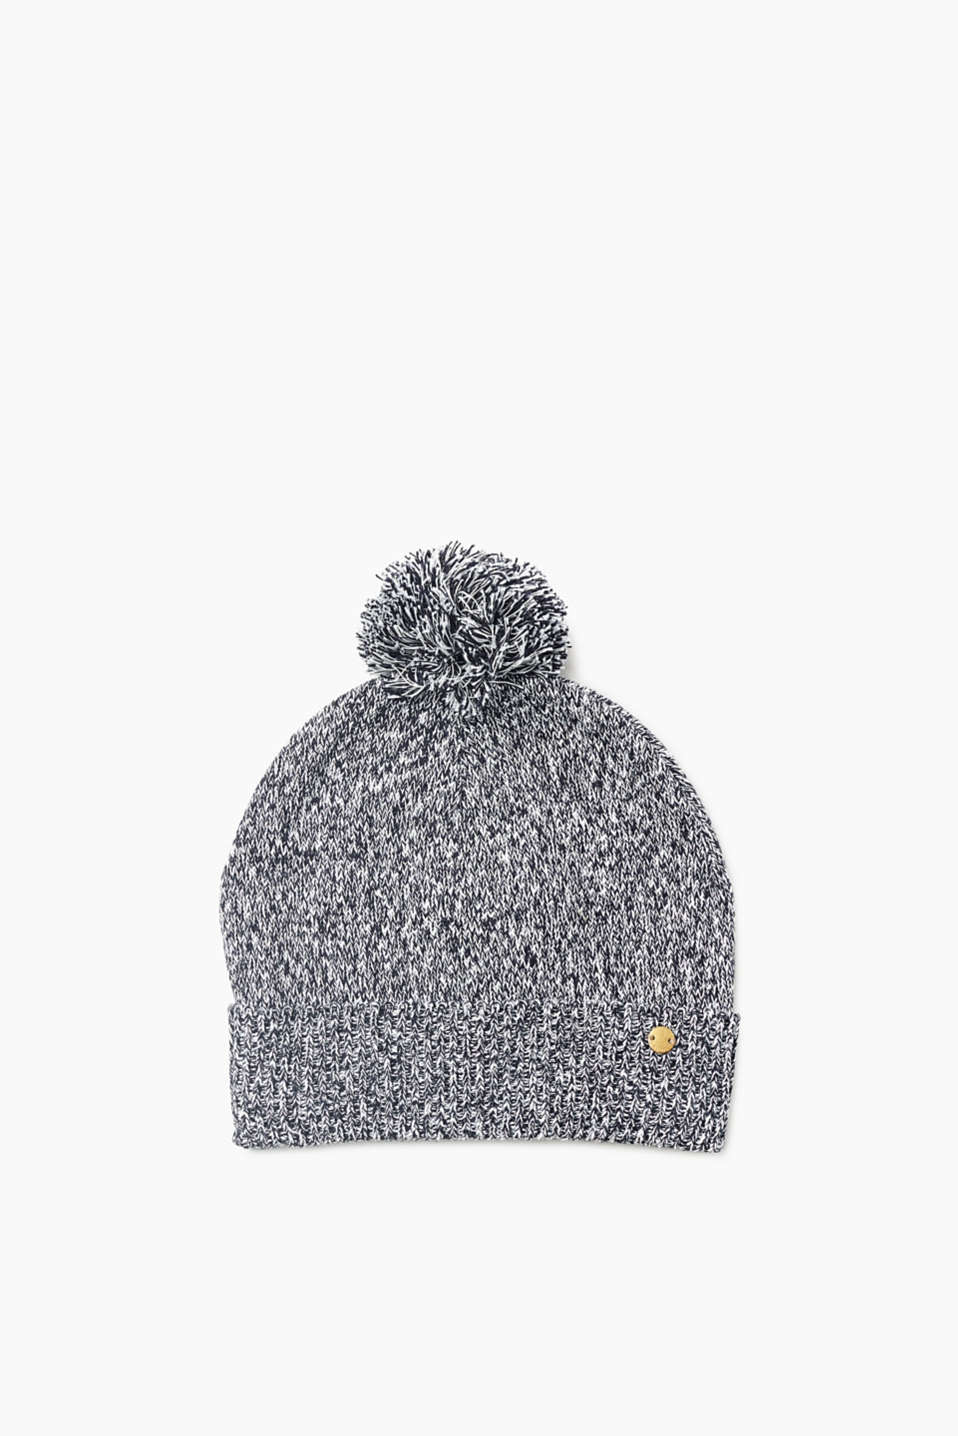 Melange knit hat with a pompom and cosy lining for warm ears and a pretty look